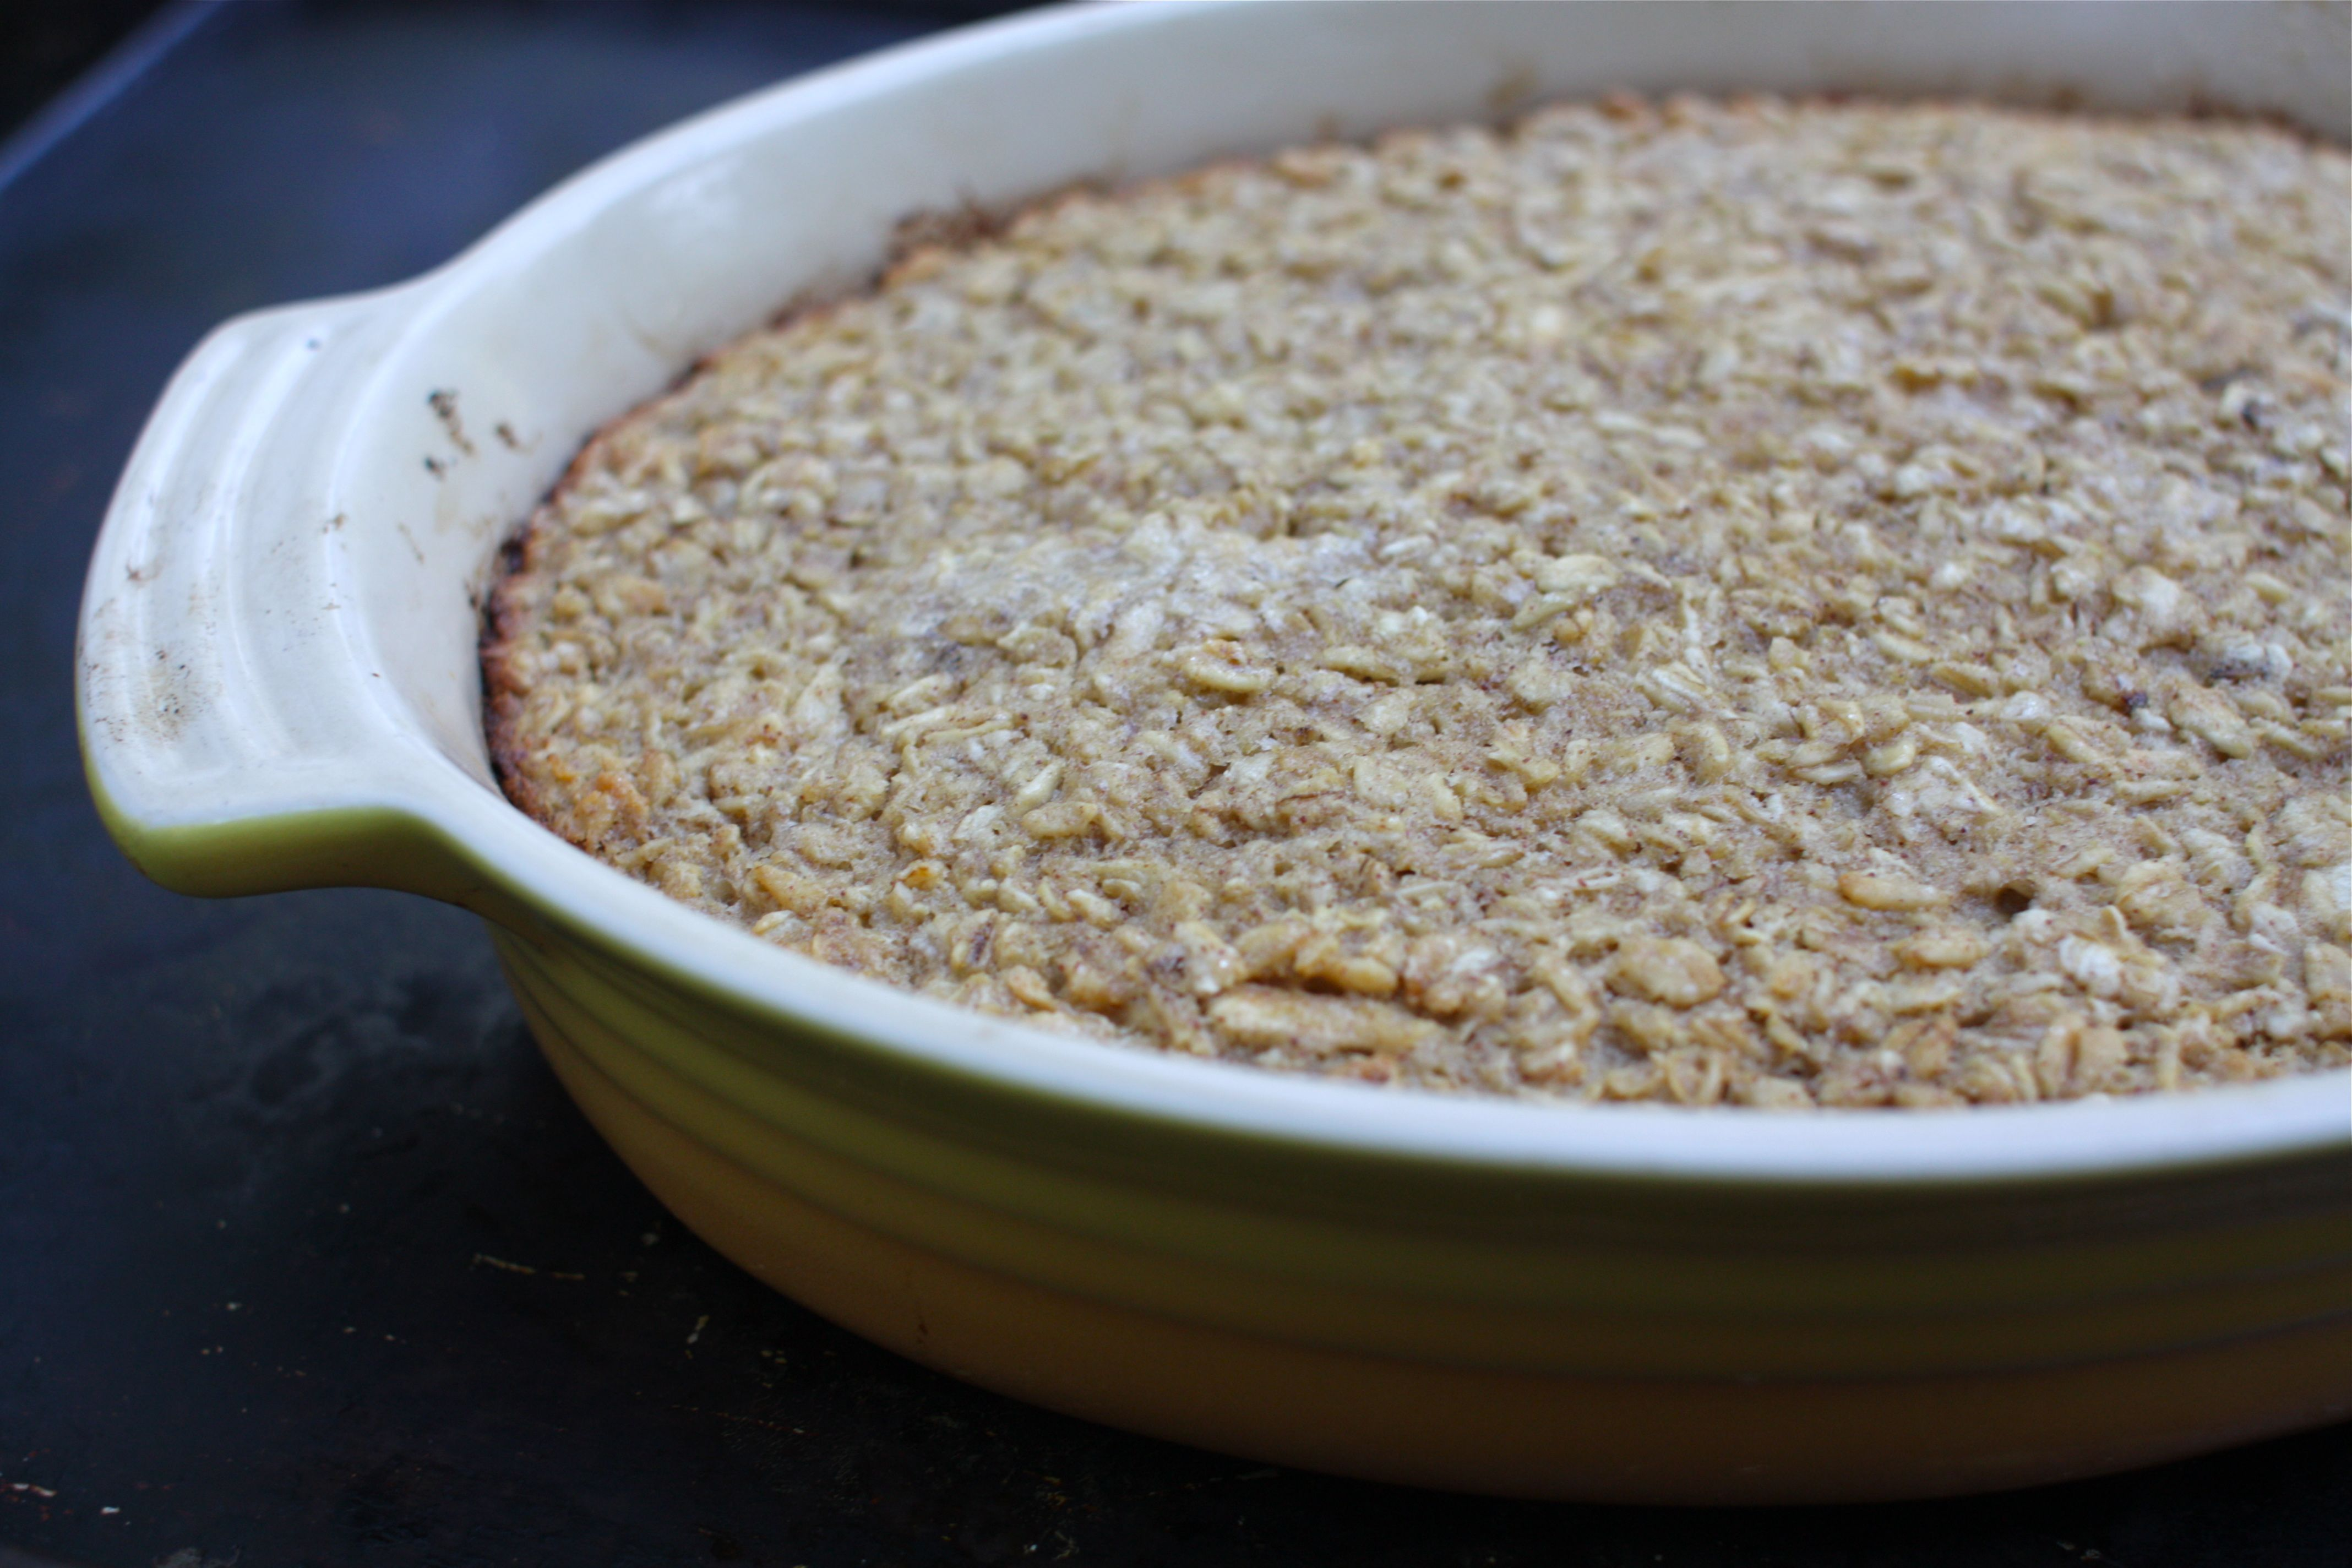 ... Less: Back to School Breakfast (Recipe: Baked Oatmeal) | Simple Bites